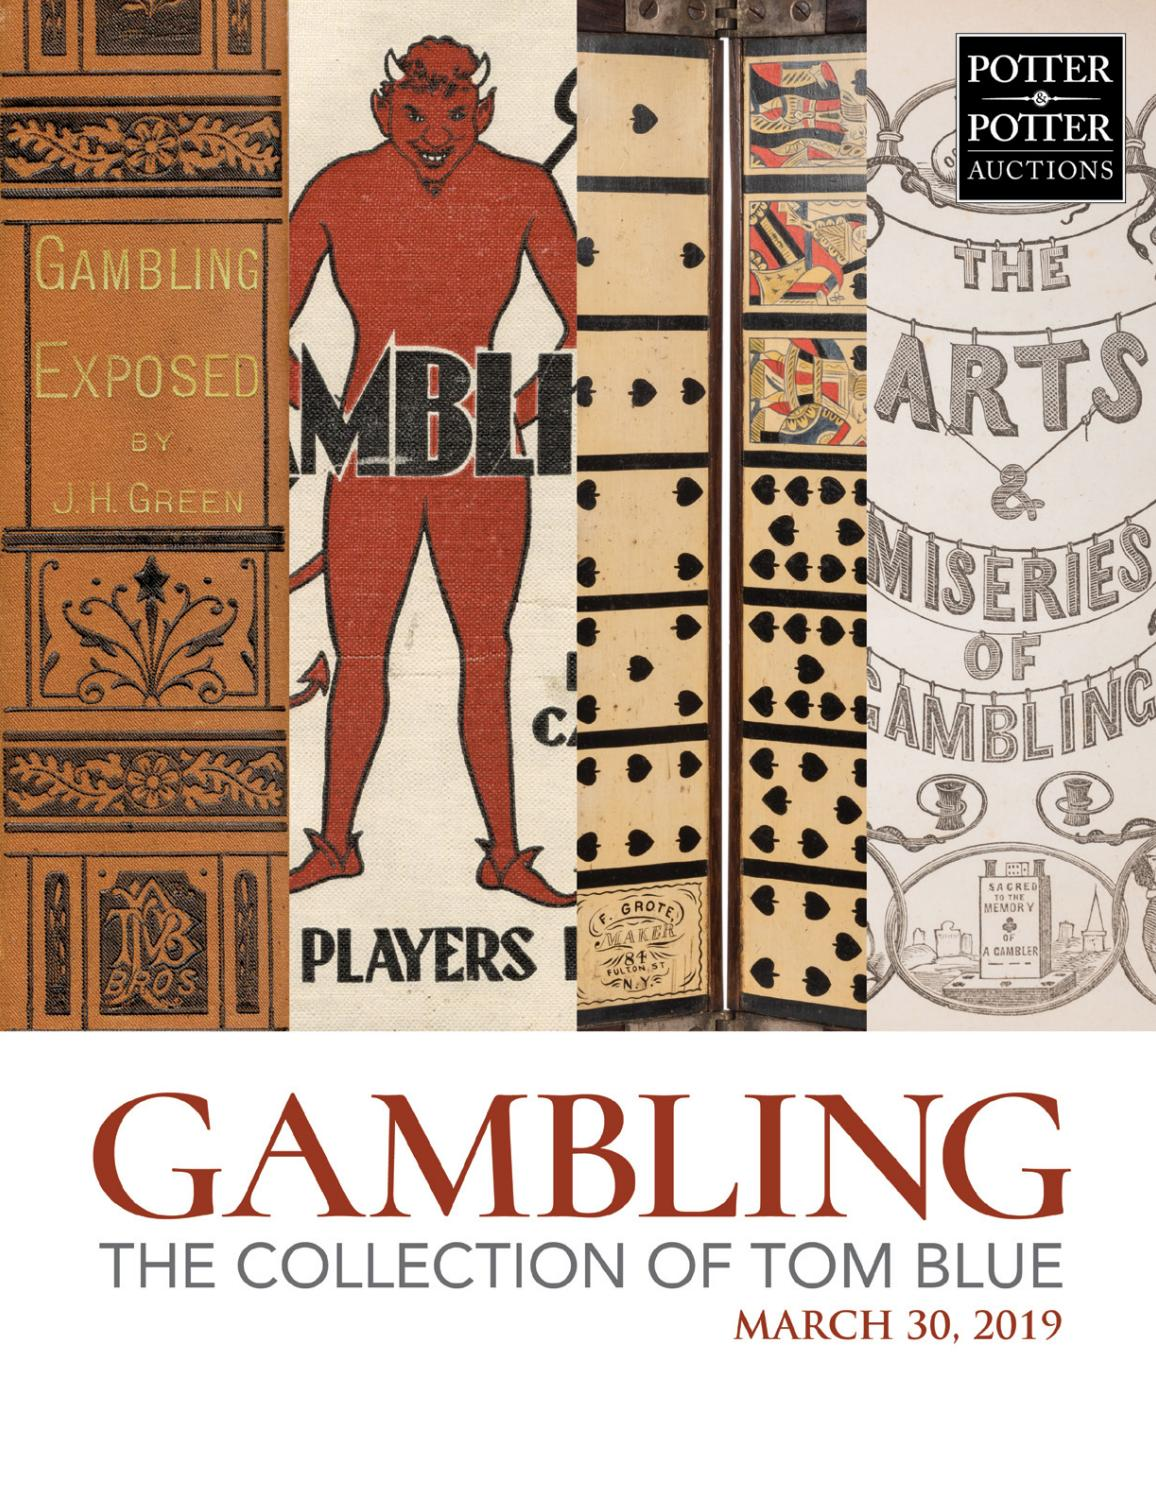 5231f802a Gambling - The Collections of Tom Blue by PotterAuctions - issuu